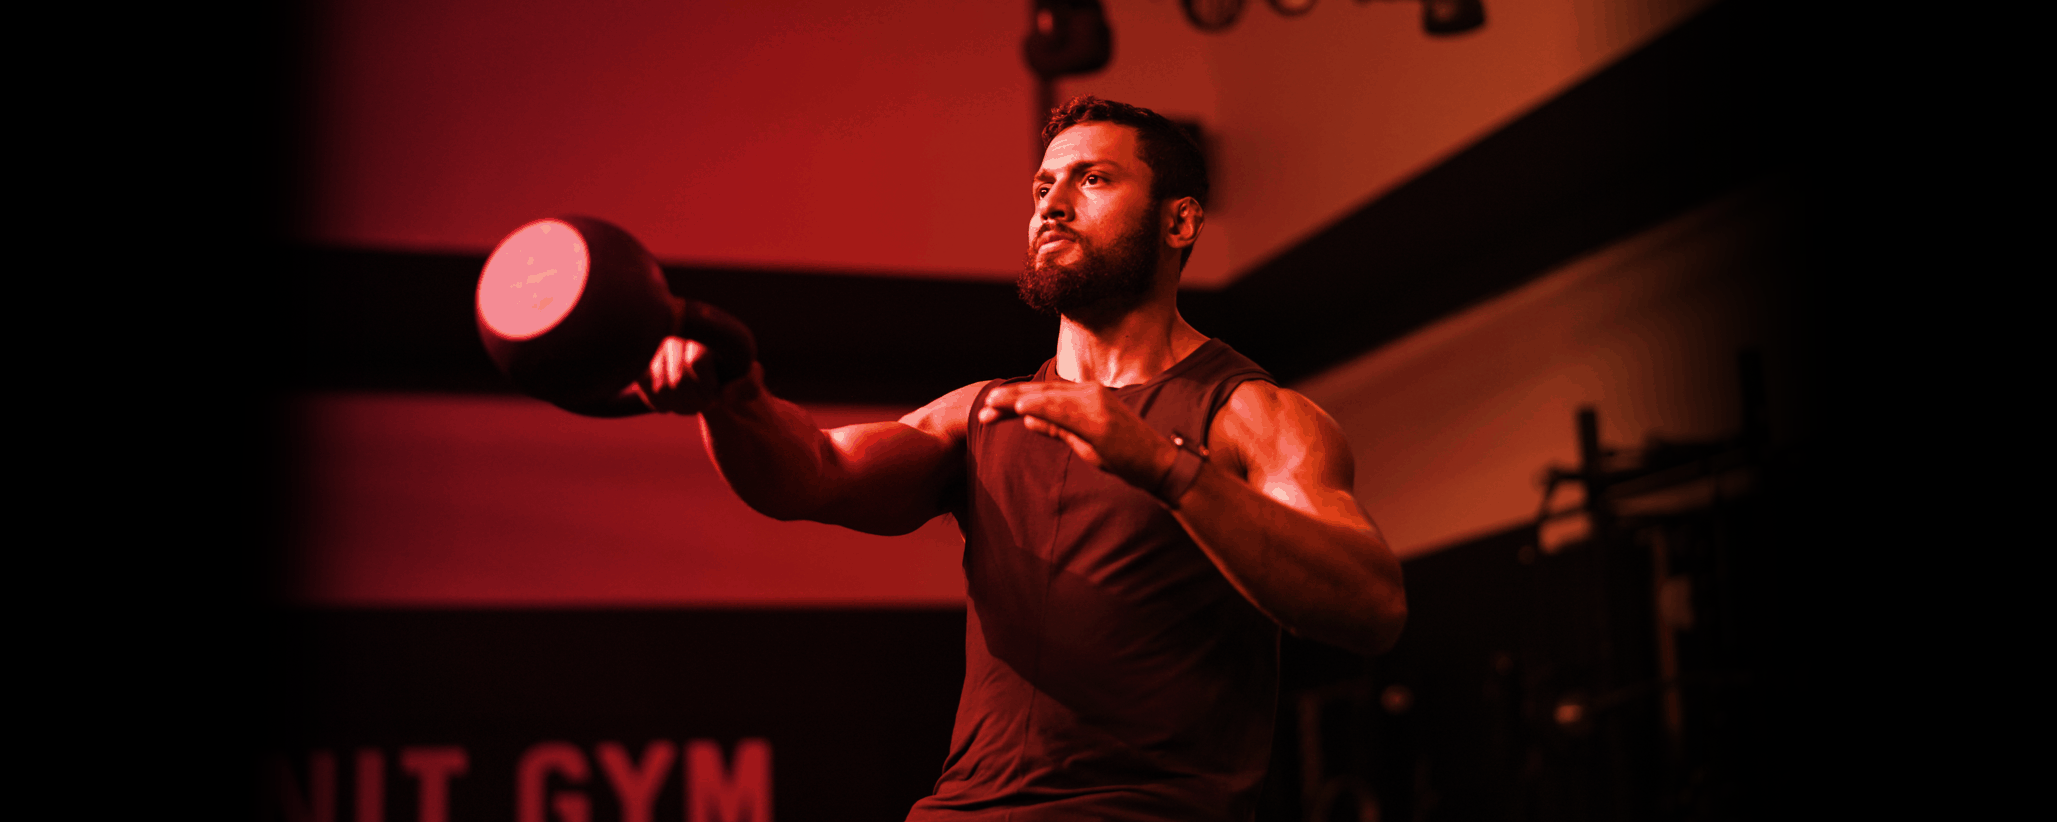 What Kettlebell Weight Should I Use?